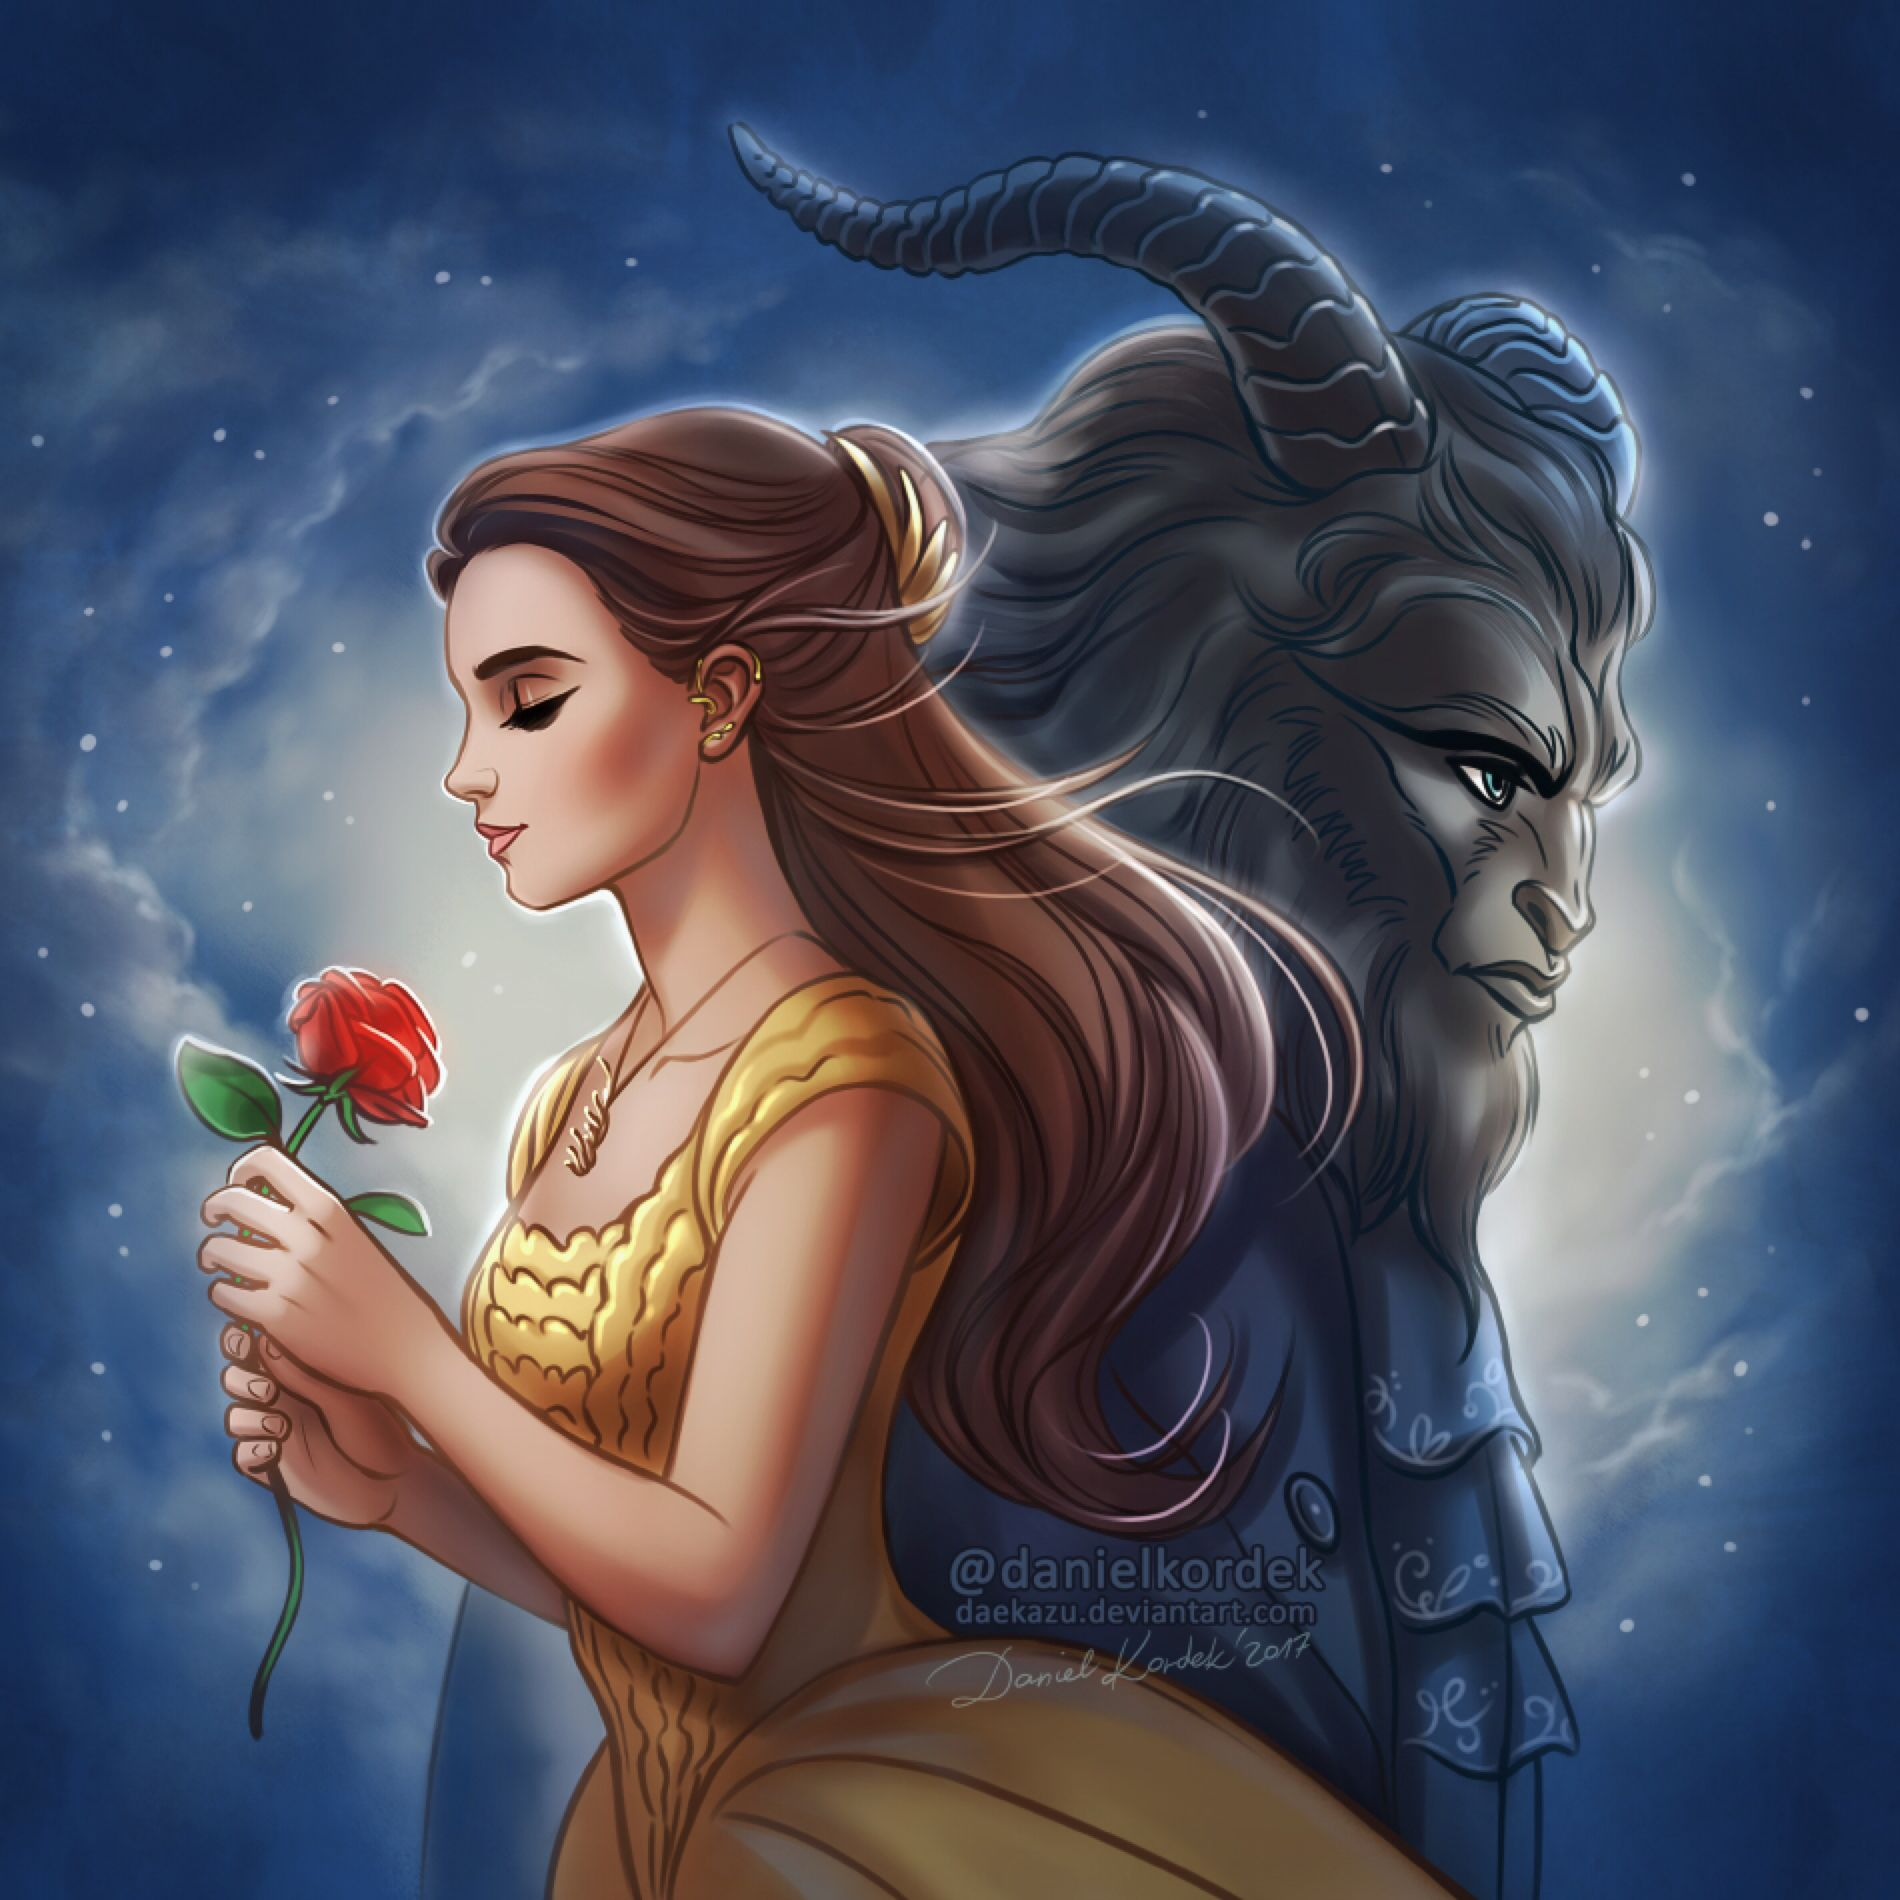 Animation of beauty and the beast essay